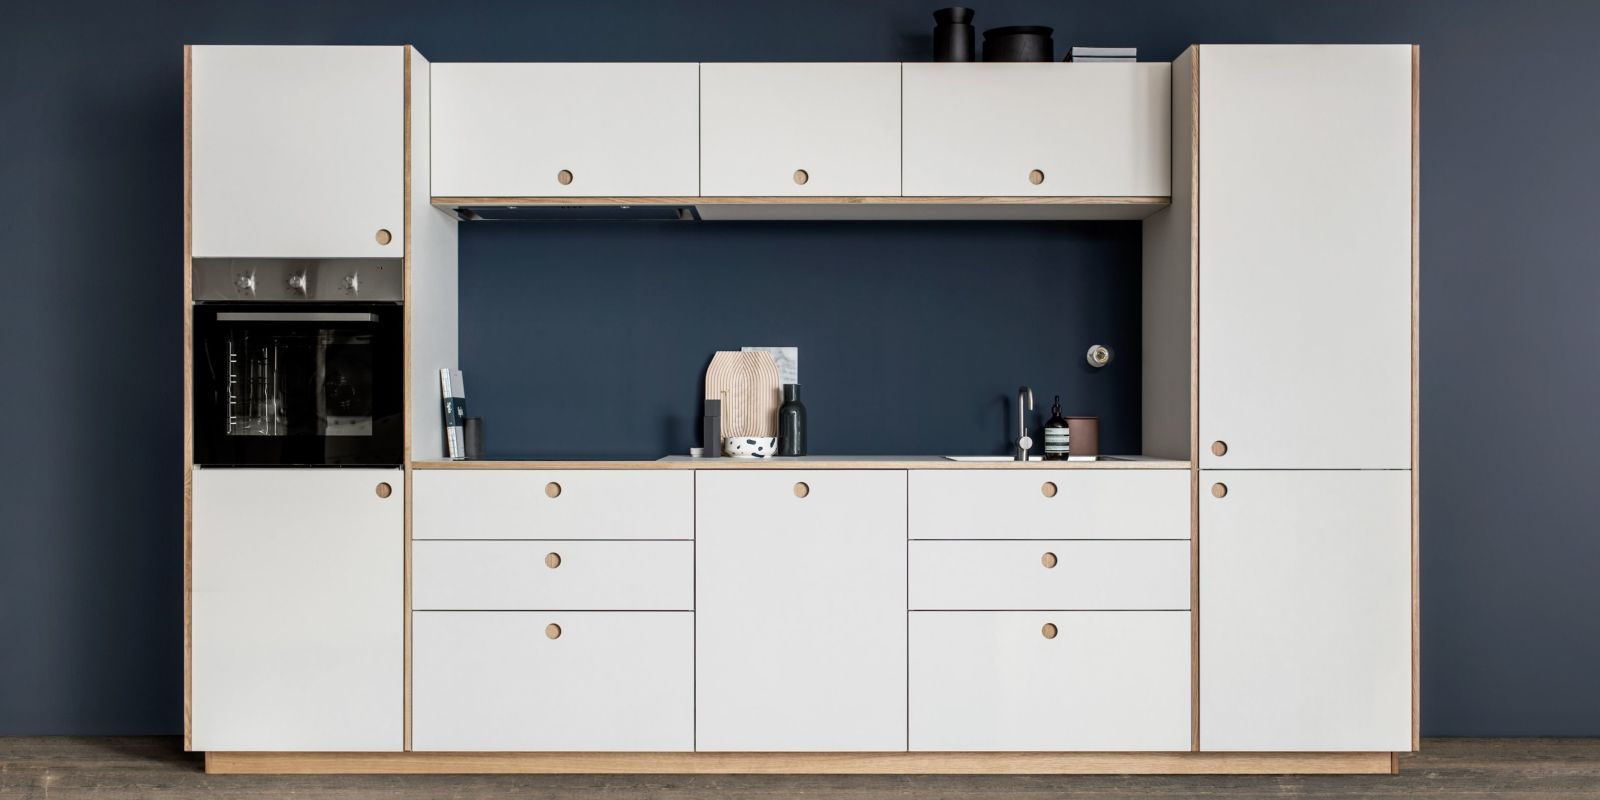 Ikea.de Küchenplaner Login These Guys Turned Hacking Ikea Kitchens Into A Full-time Job | Kitchen Design, Classical Kitchen, Ikea Kitchen